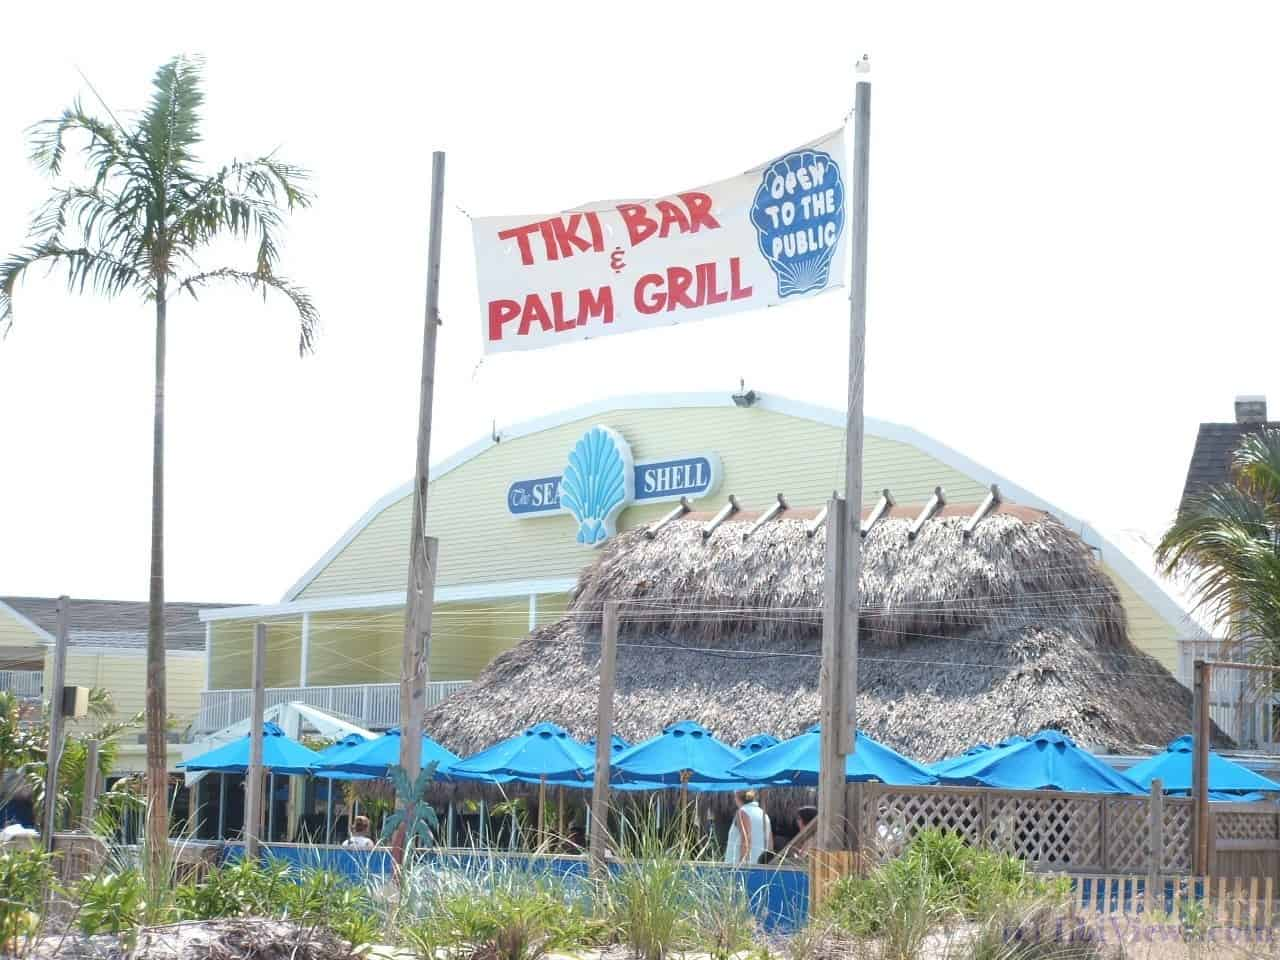 The Tiki Bar and Palm Grill at the Seashell